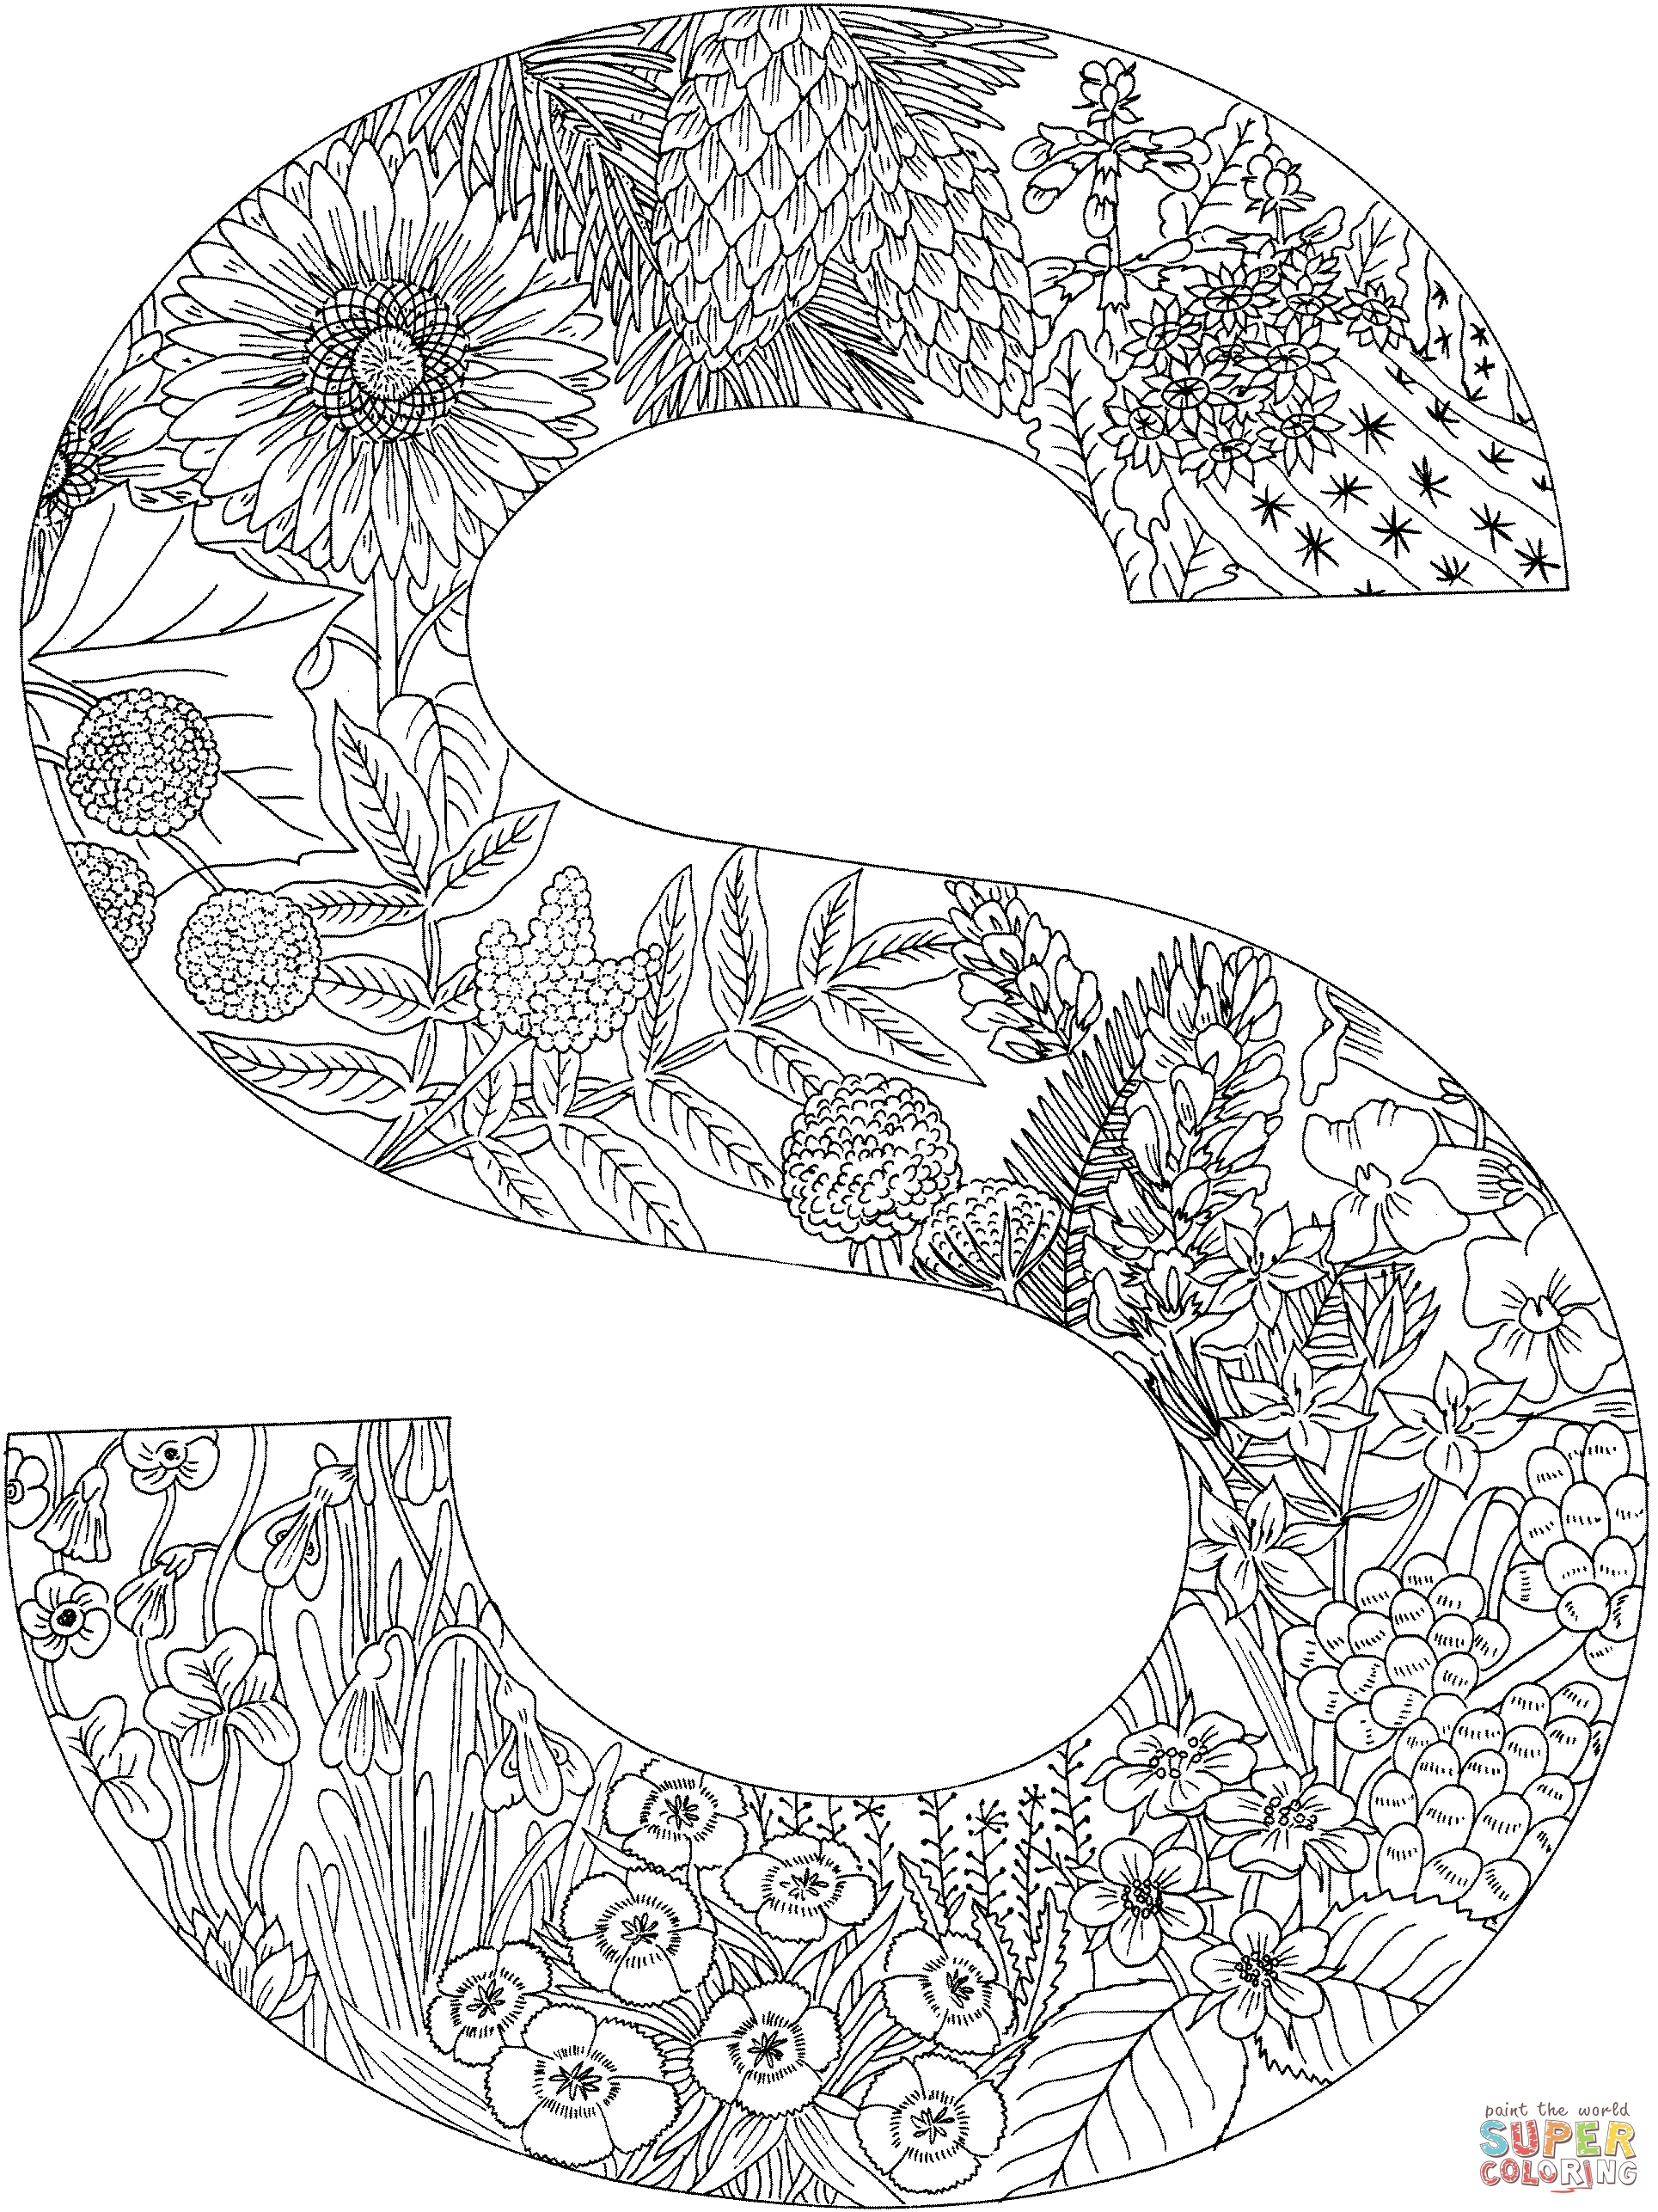 letter coloring pages for adults - coloring pages letters adult